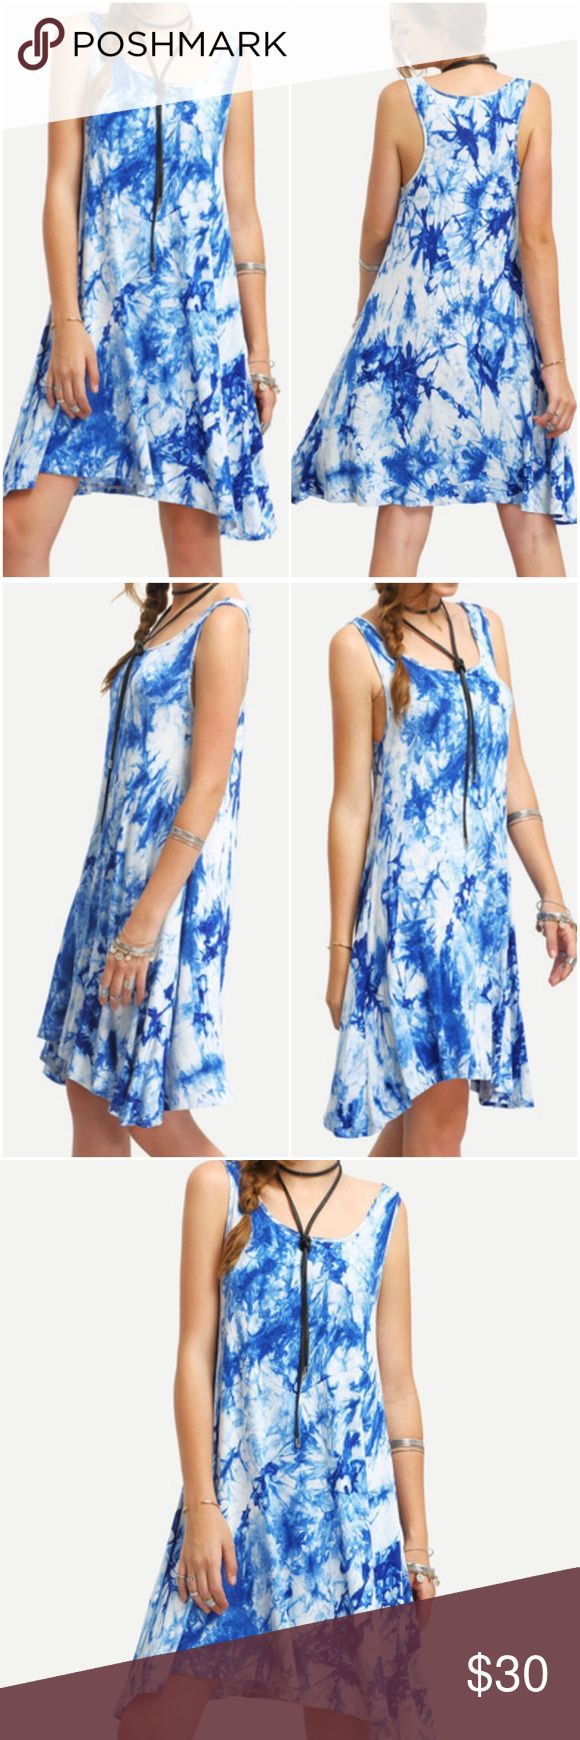 Sleeveless Print Shift Dress. Price firm. Blue Sleeveless print shift dress, casual dress or can be used as a beach cover up. Scoop front neck. Material-Polyester. (#6709) Boutique Dresses